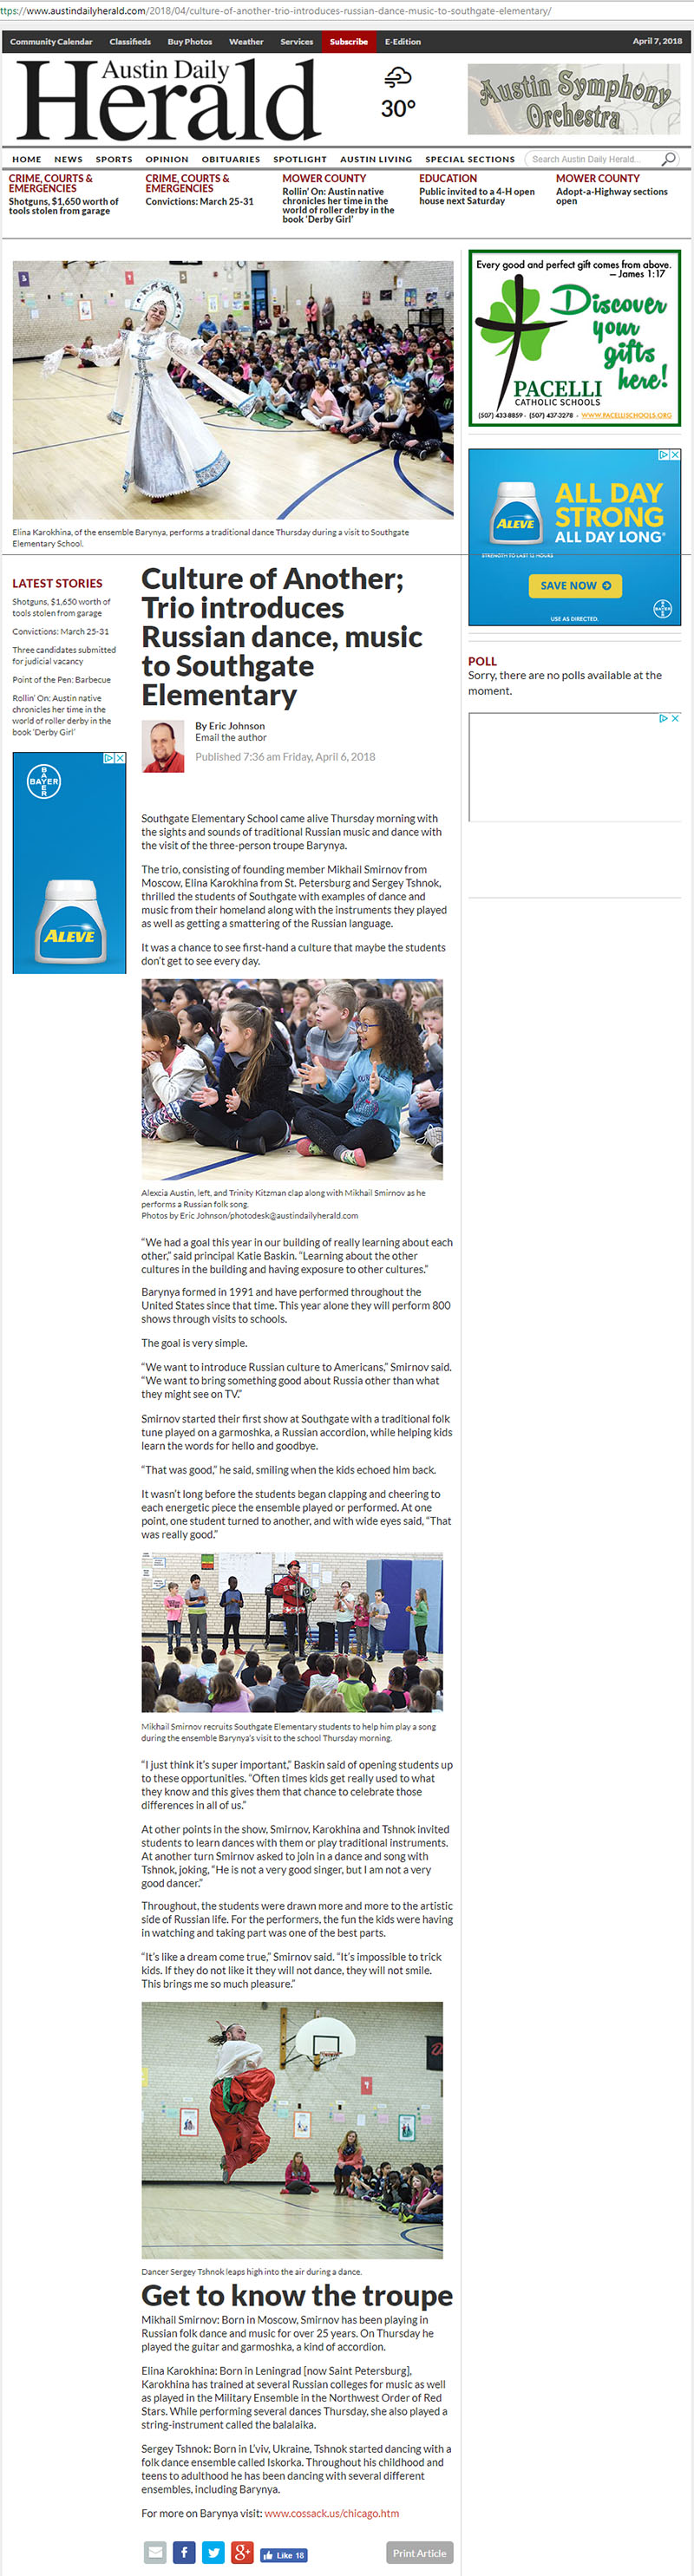 Culture of Another; Trio introduces Russian dance, music to Southgate Elementary, Article by Eric Johnson, Austin Daily Herald